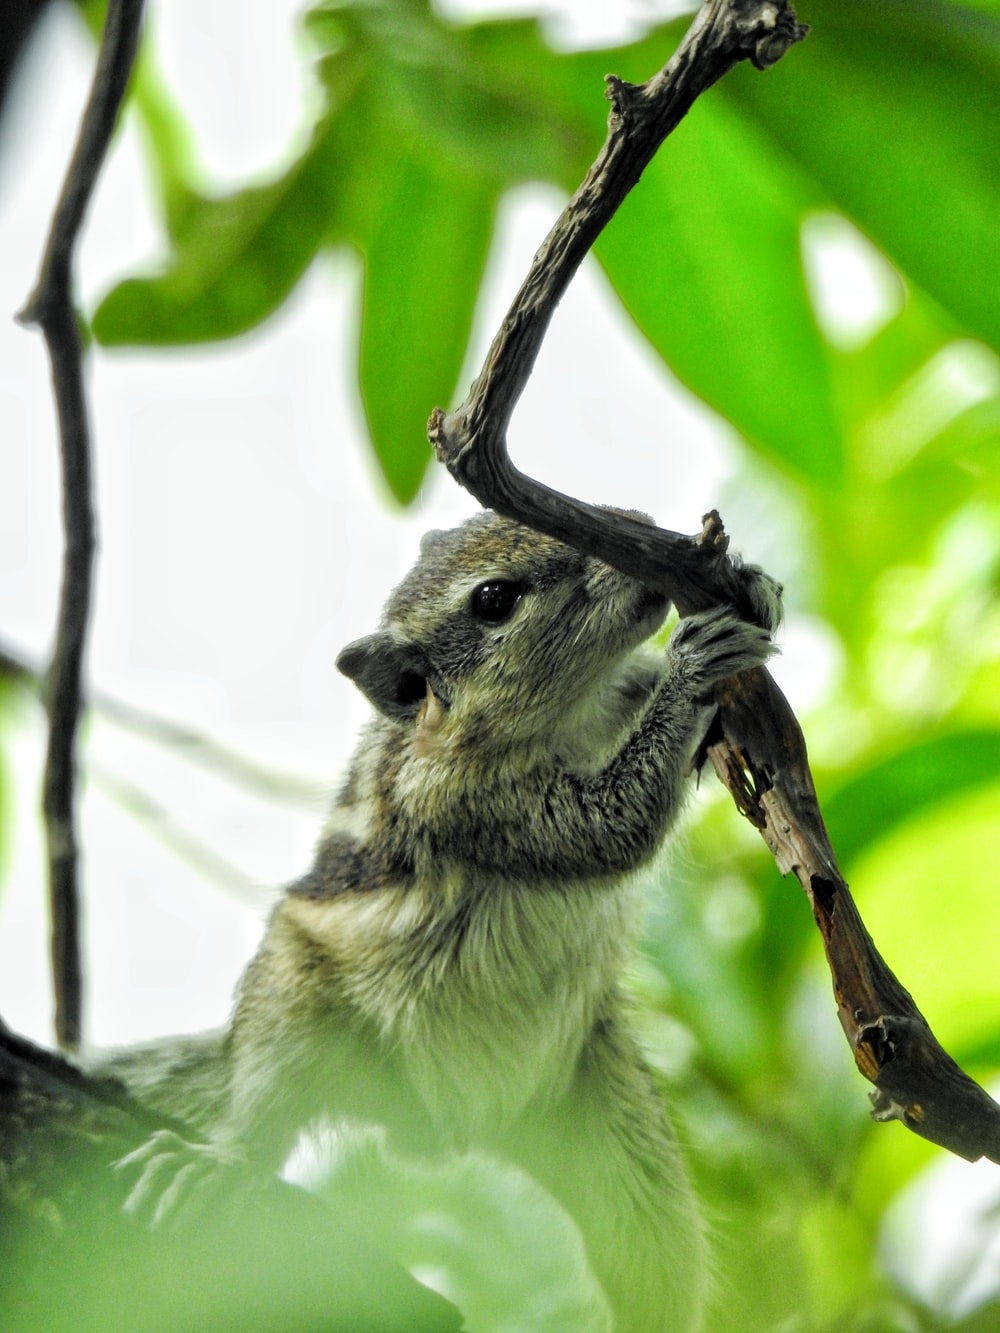 white and gray squirrel on brown tree branch